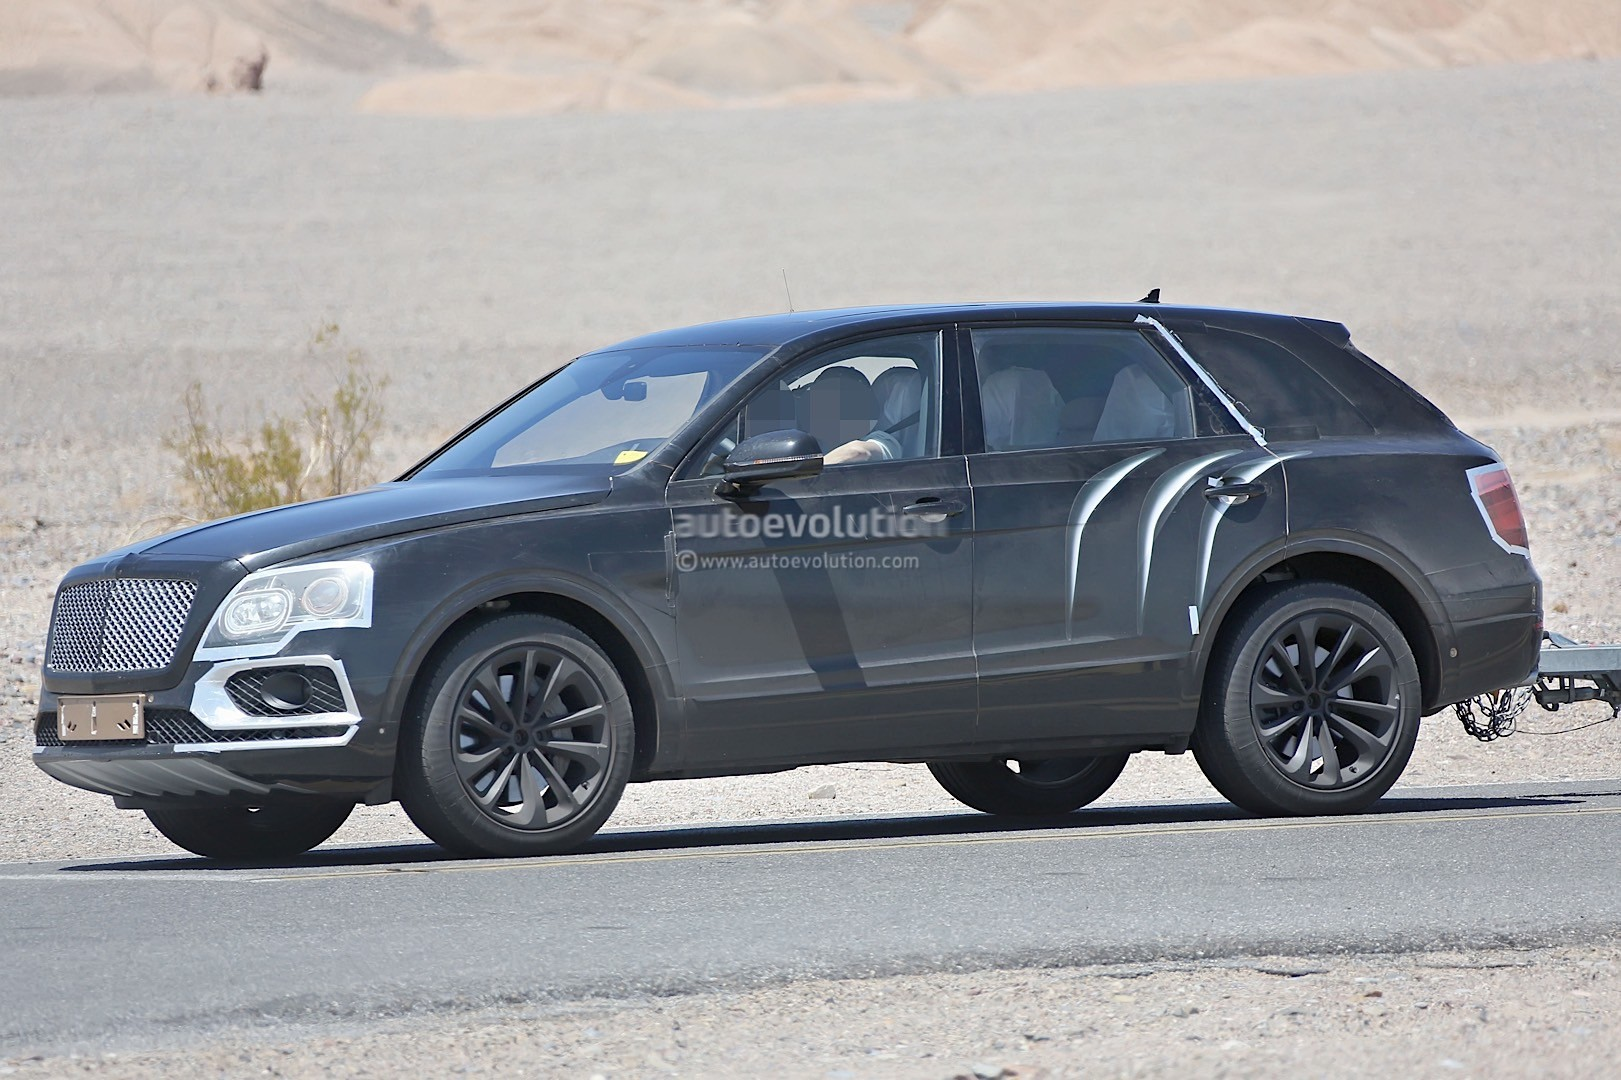 2016 bentley bentayga suv spied testing in death valley. Black Bedroom Furniture Sets. Home Design Ideas